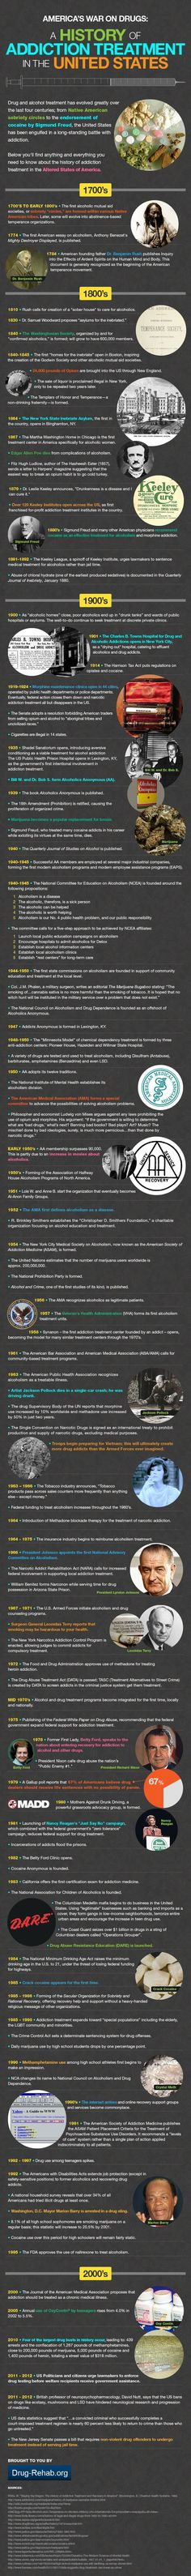 A History Of Addiction Treatment In The United States [INFOGRAPHIC] #addiction#treatment